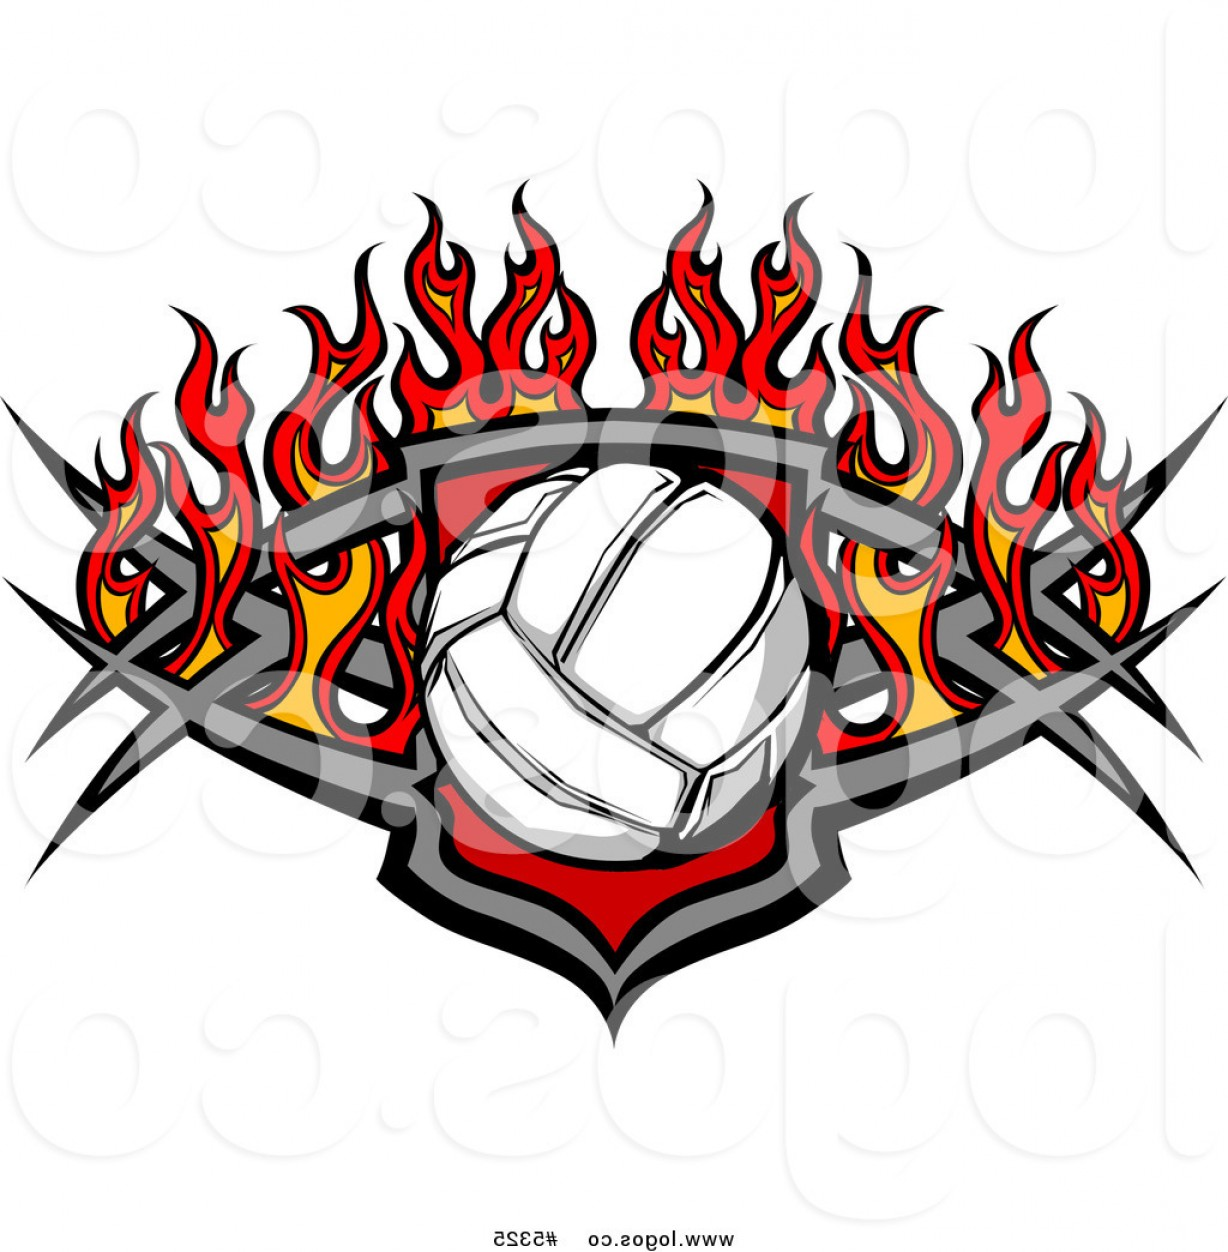 Volleyball Vector Logo: Royalty Free Vector Of A Logo Of A Volleyball Tribal Shield With Flames By Chromaco